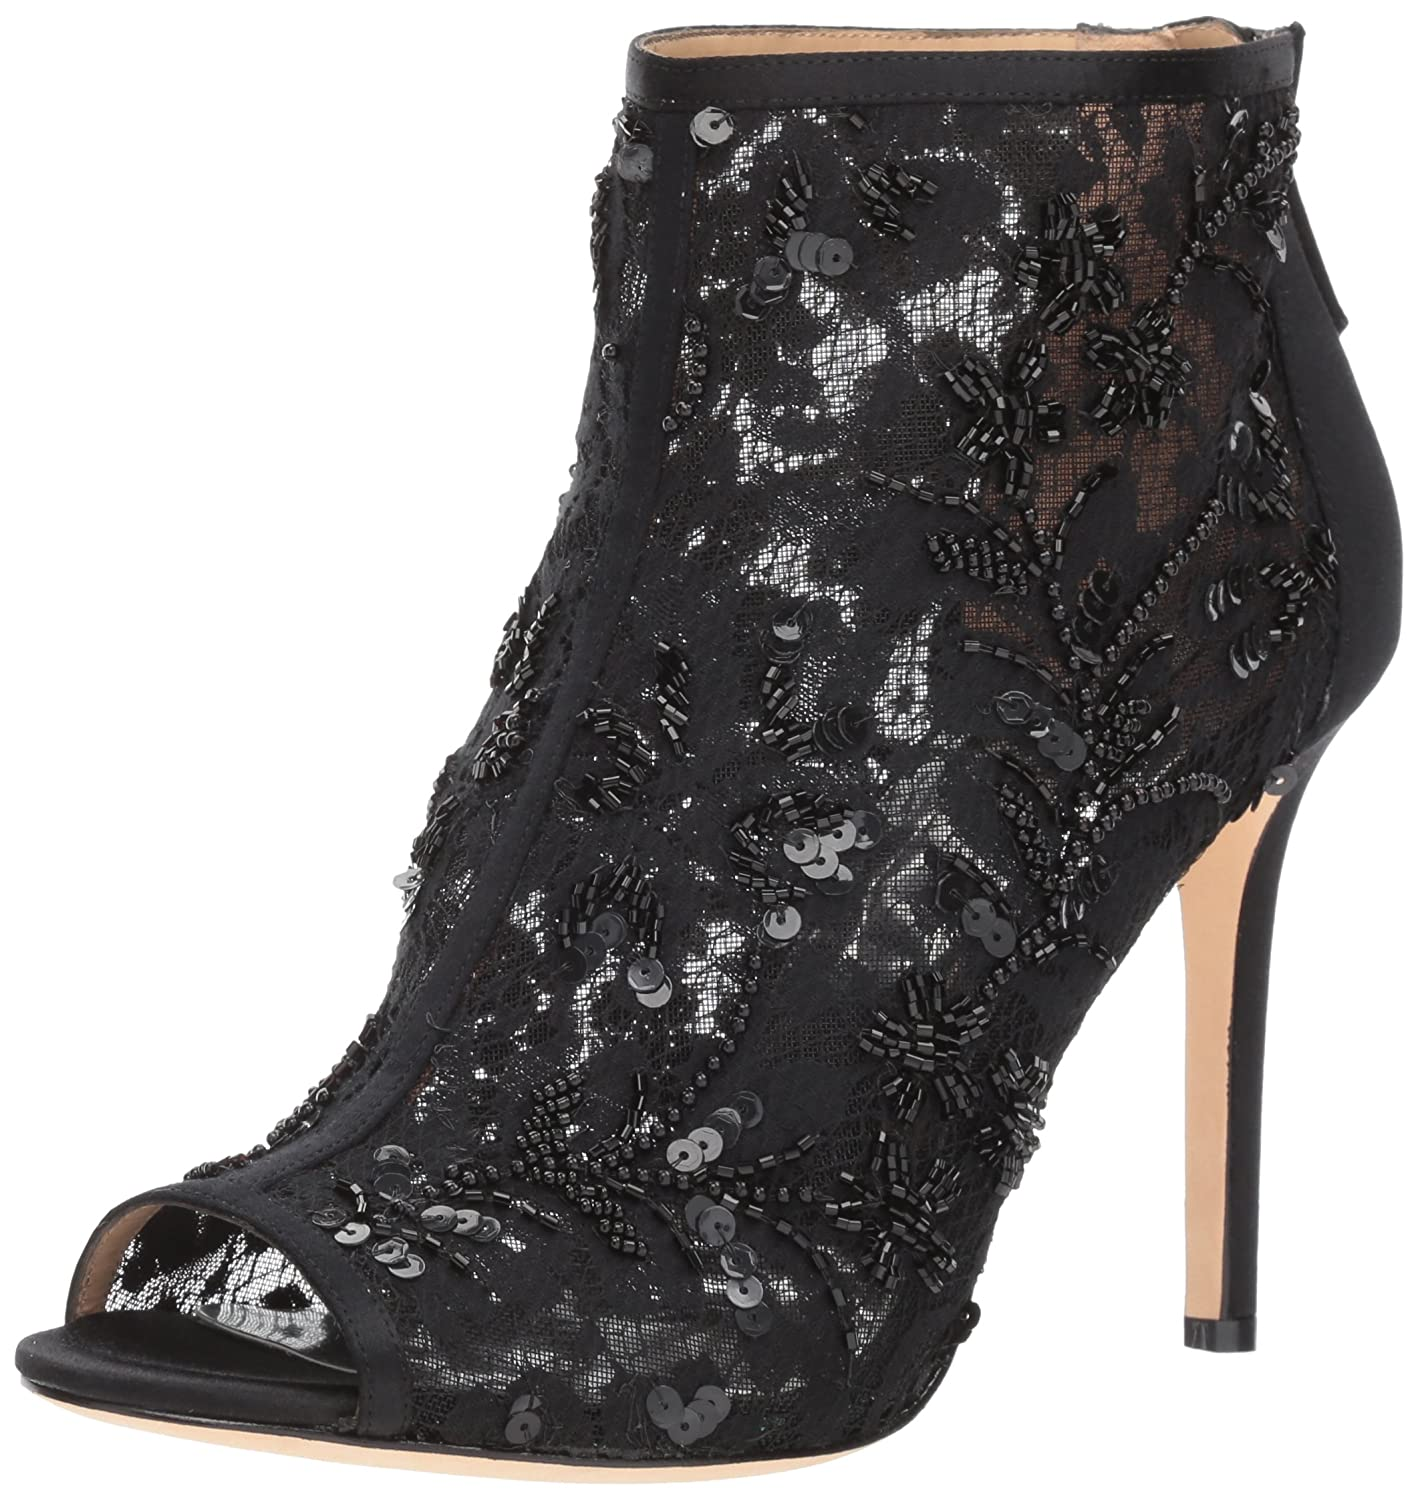 Badgley Mischka Women's Moyra Ankle Boot B073C3XXJP 8 B(M) US|Black